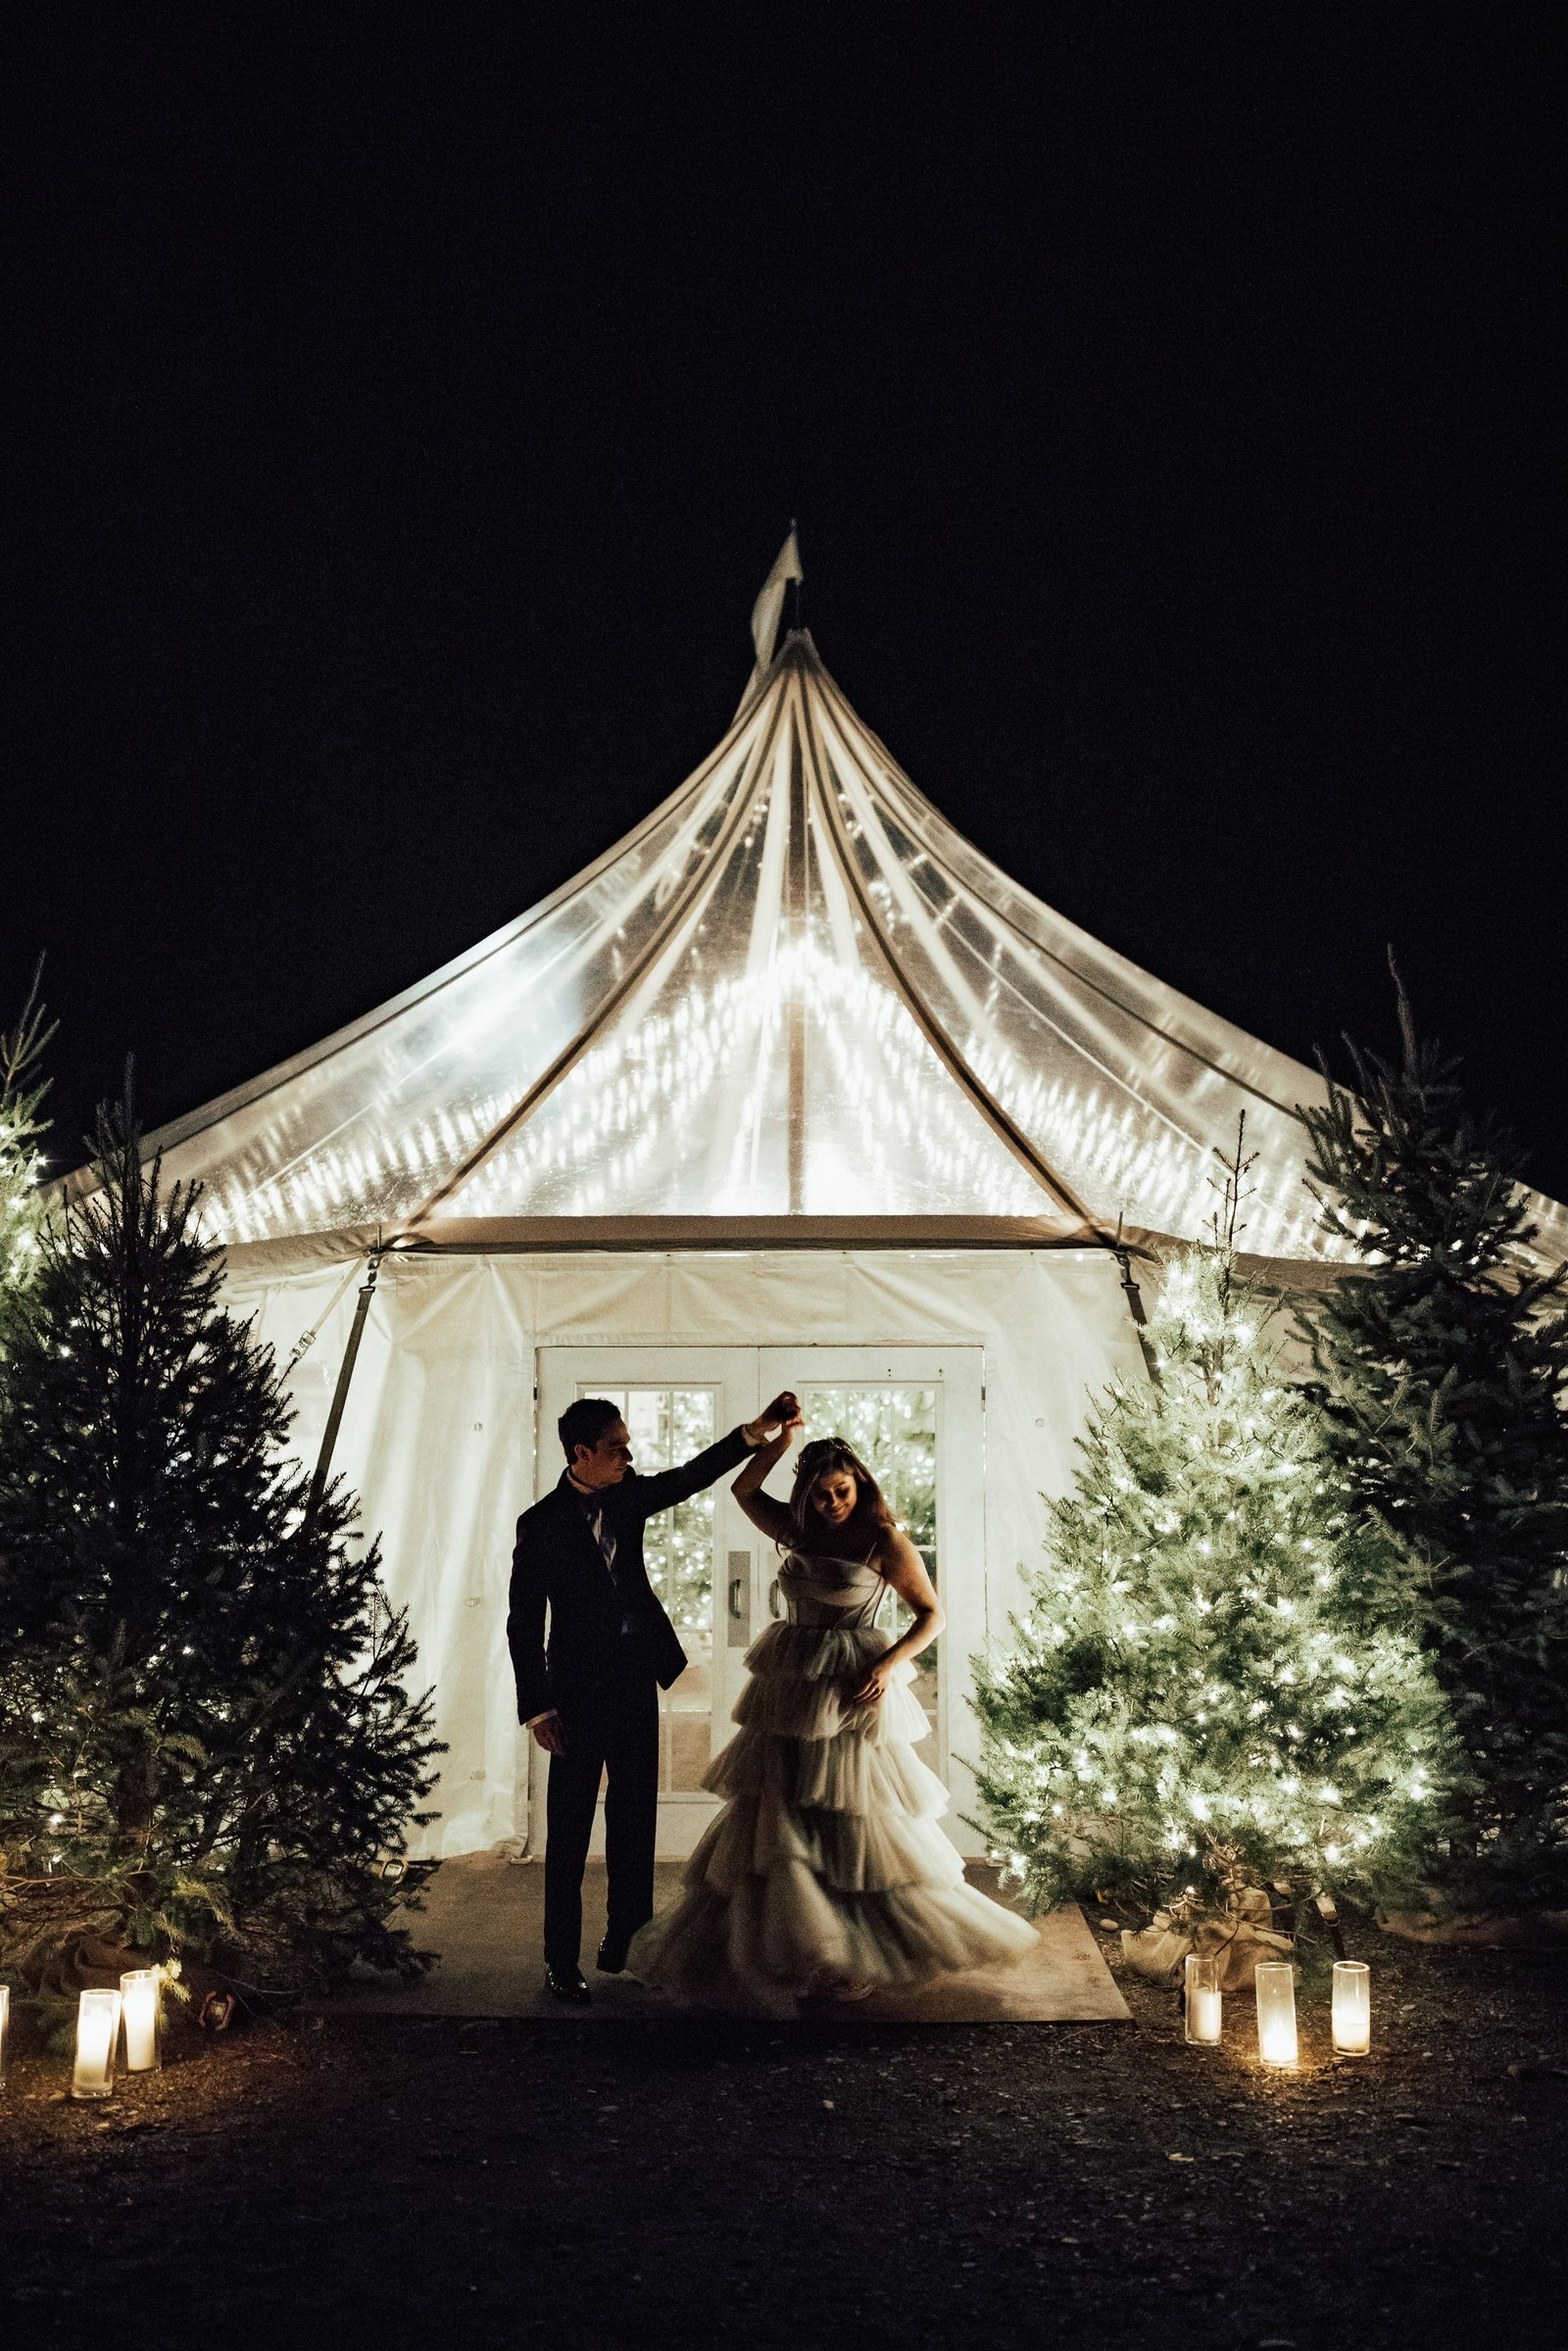 Christy-l-Johnston-Photography-Monica-Relyea-Events-Noelle-Downing-Instagram-Noelle_s-Favorite-Day-Wedding-Battenfelds-Christmas-tree-farm-Red-Hook-New-York-Hudson-Valley-upstate-november-2019-IMG_6605